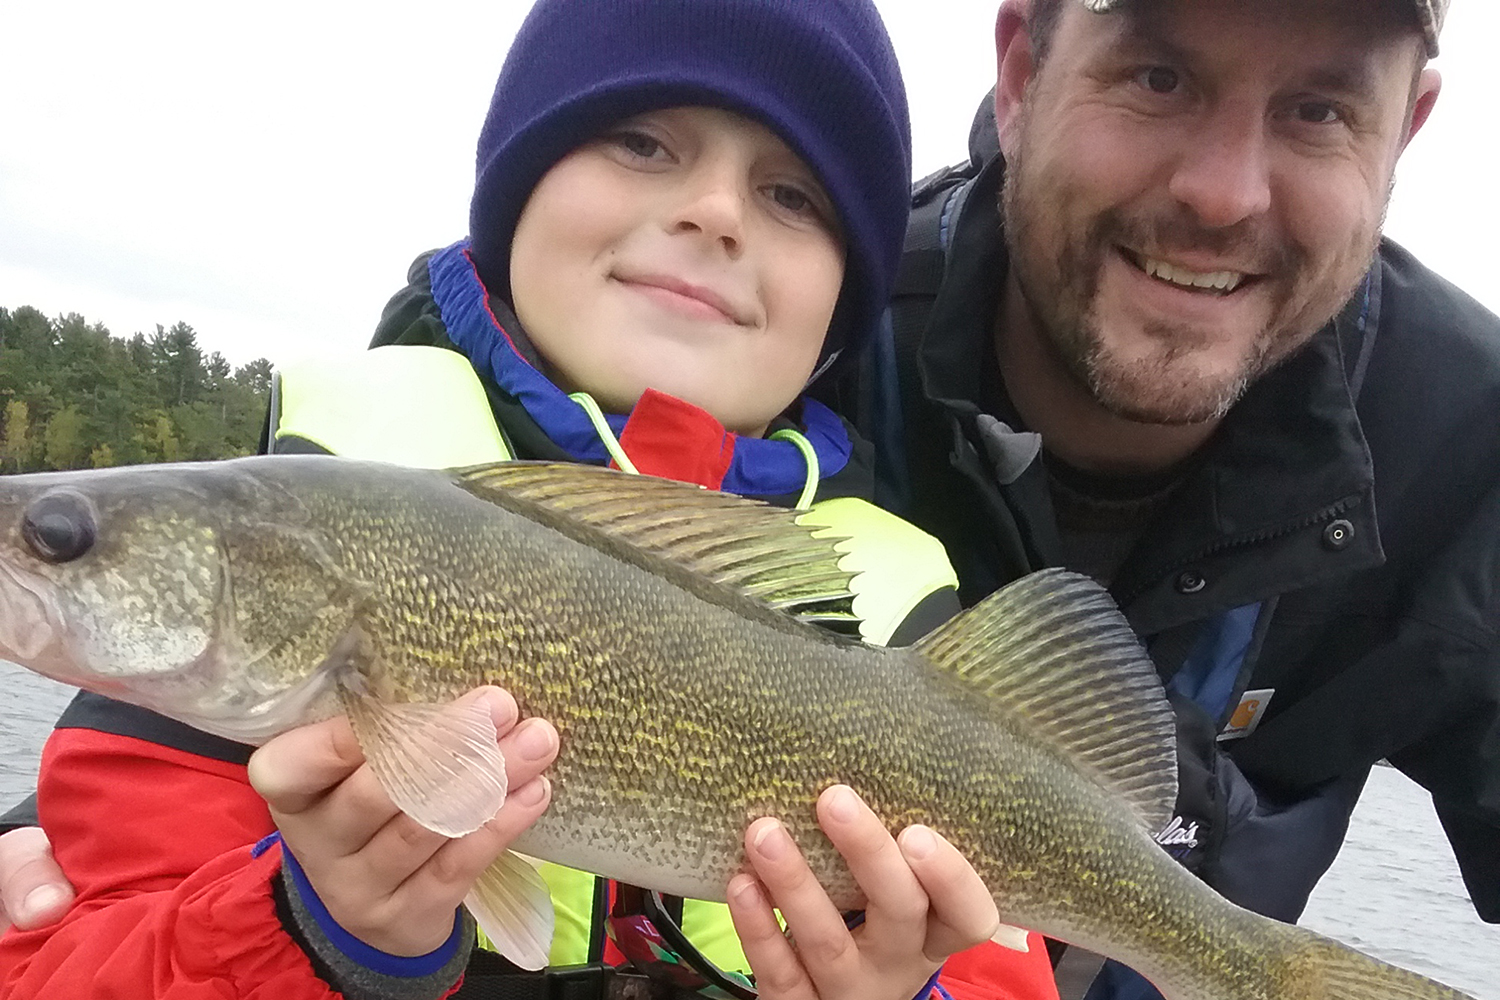 Here are a few great tips to keep young anglers interested in fishing, and to come back again.